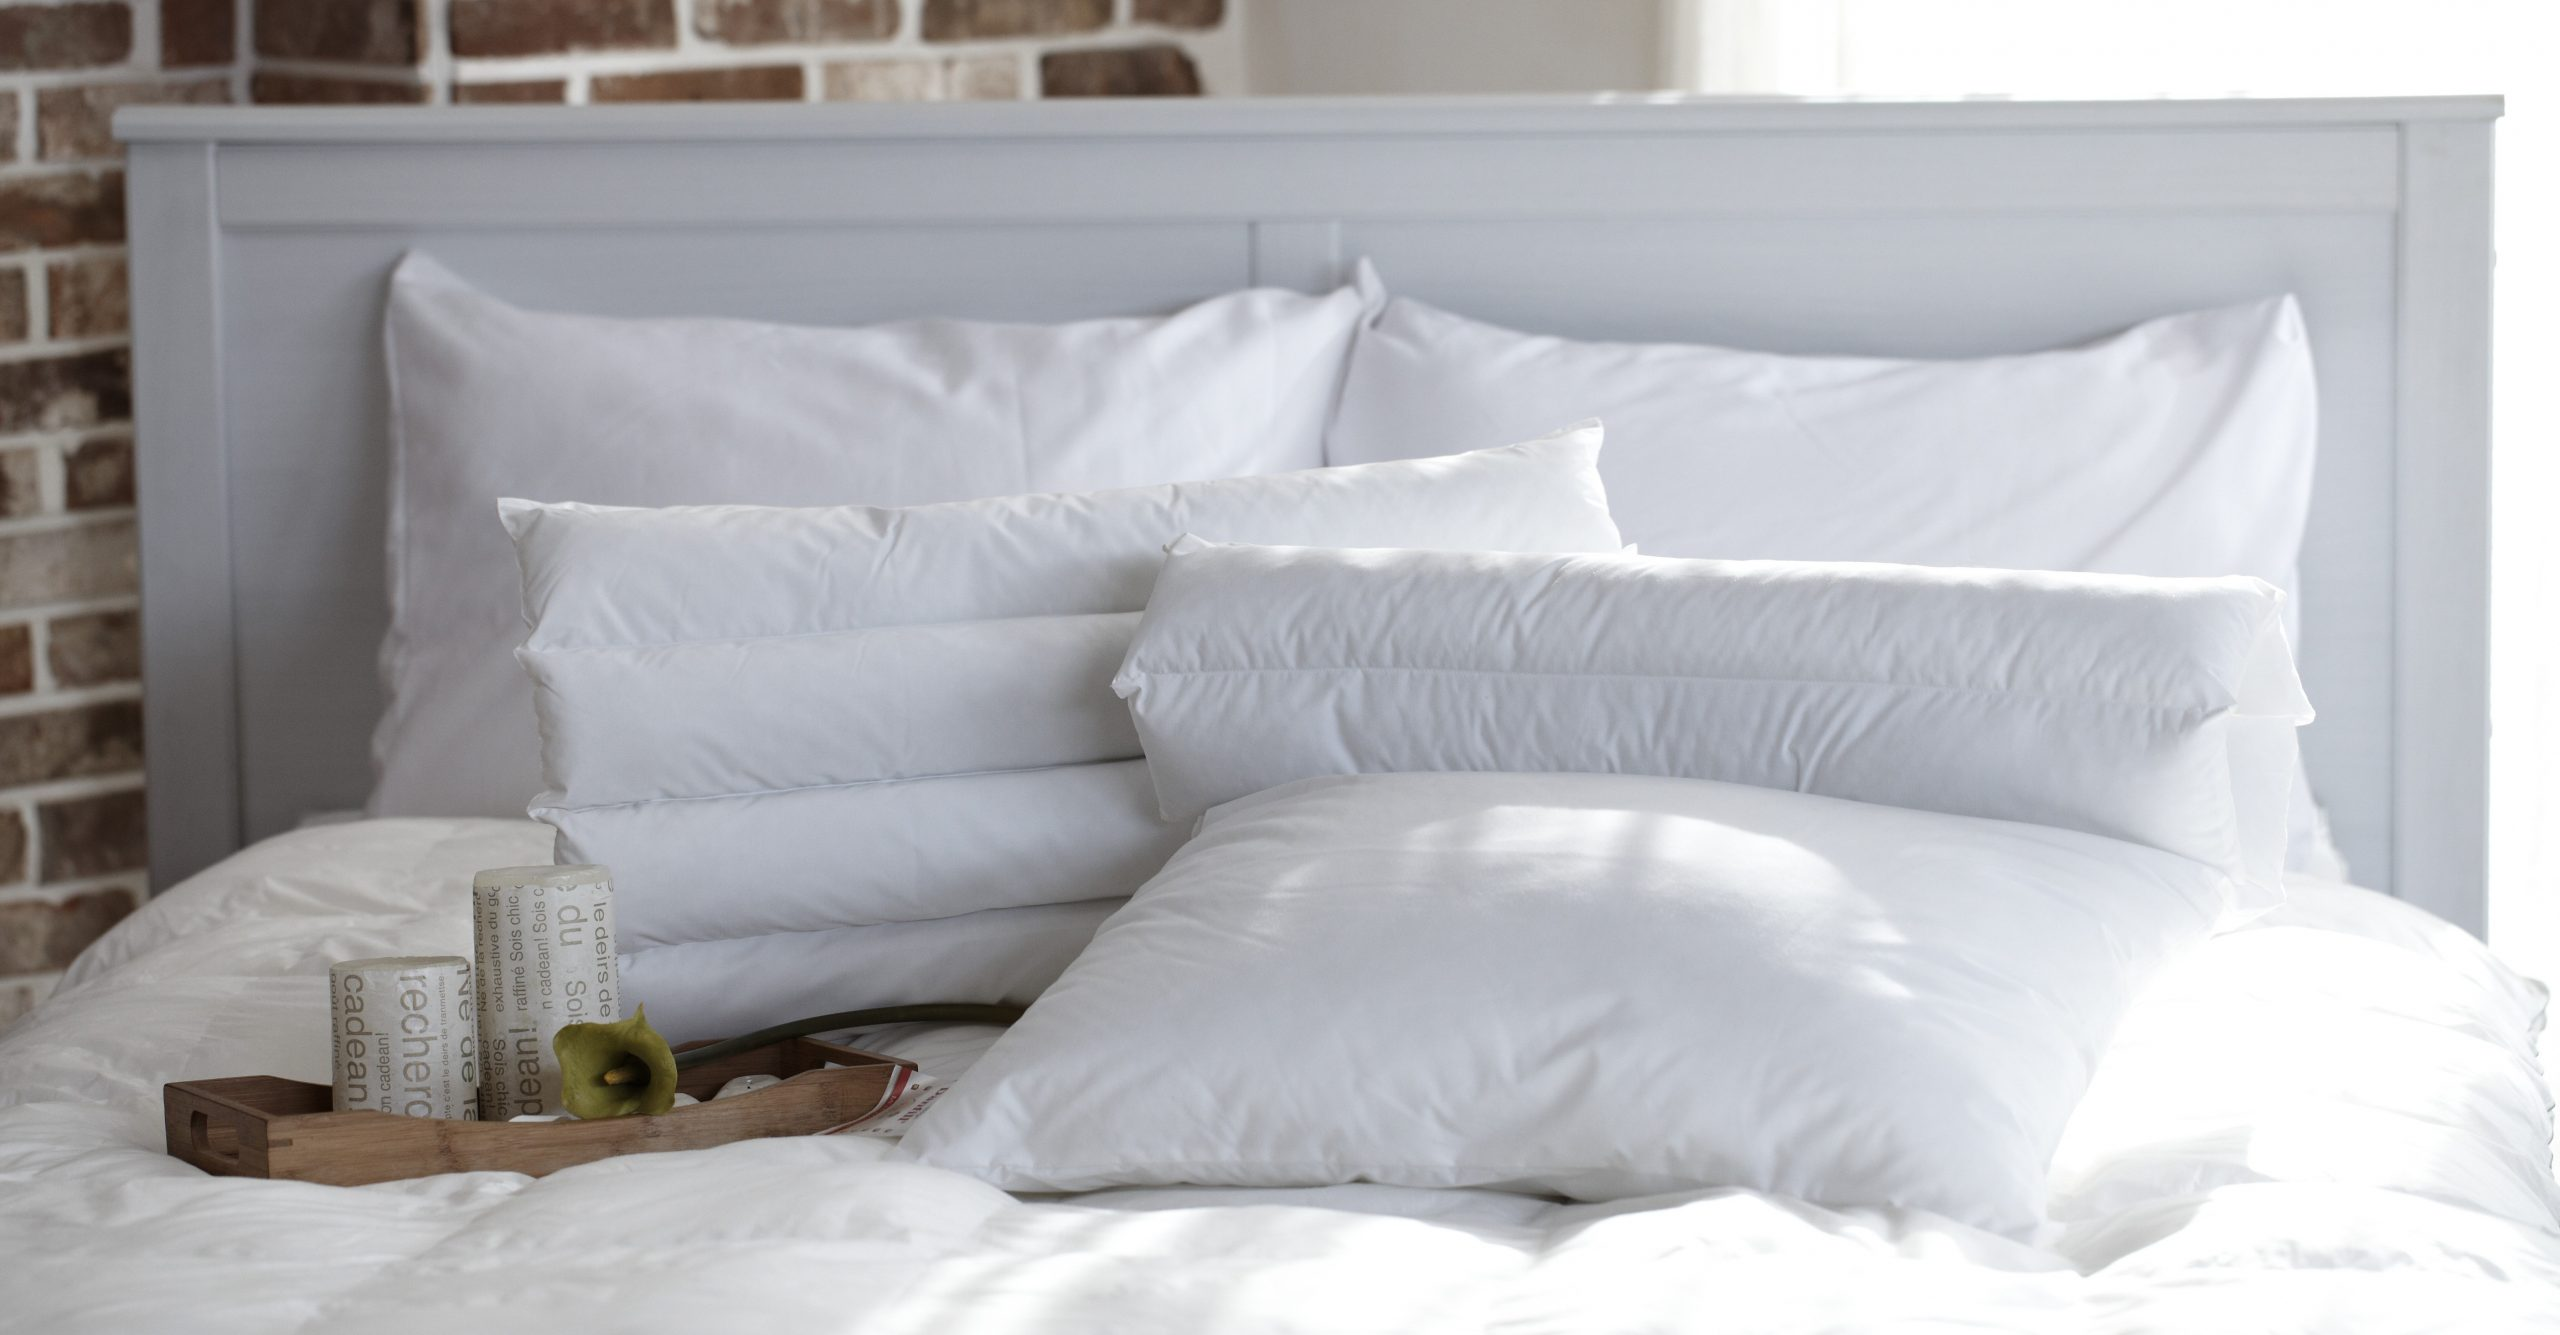 washing white bed linen